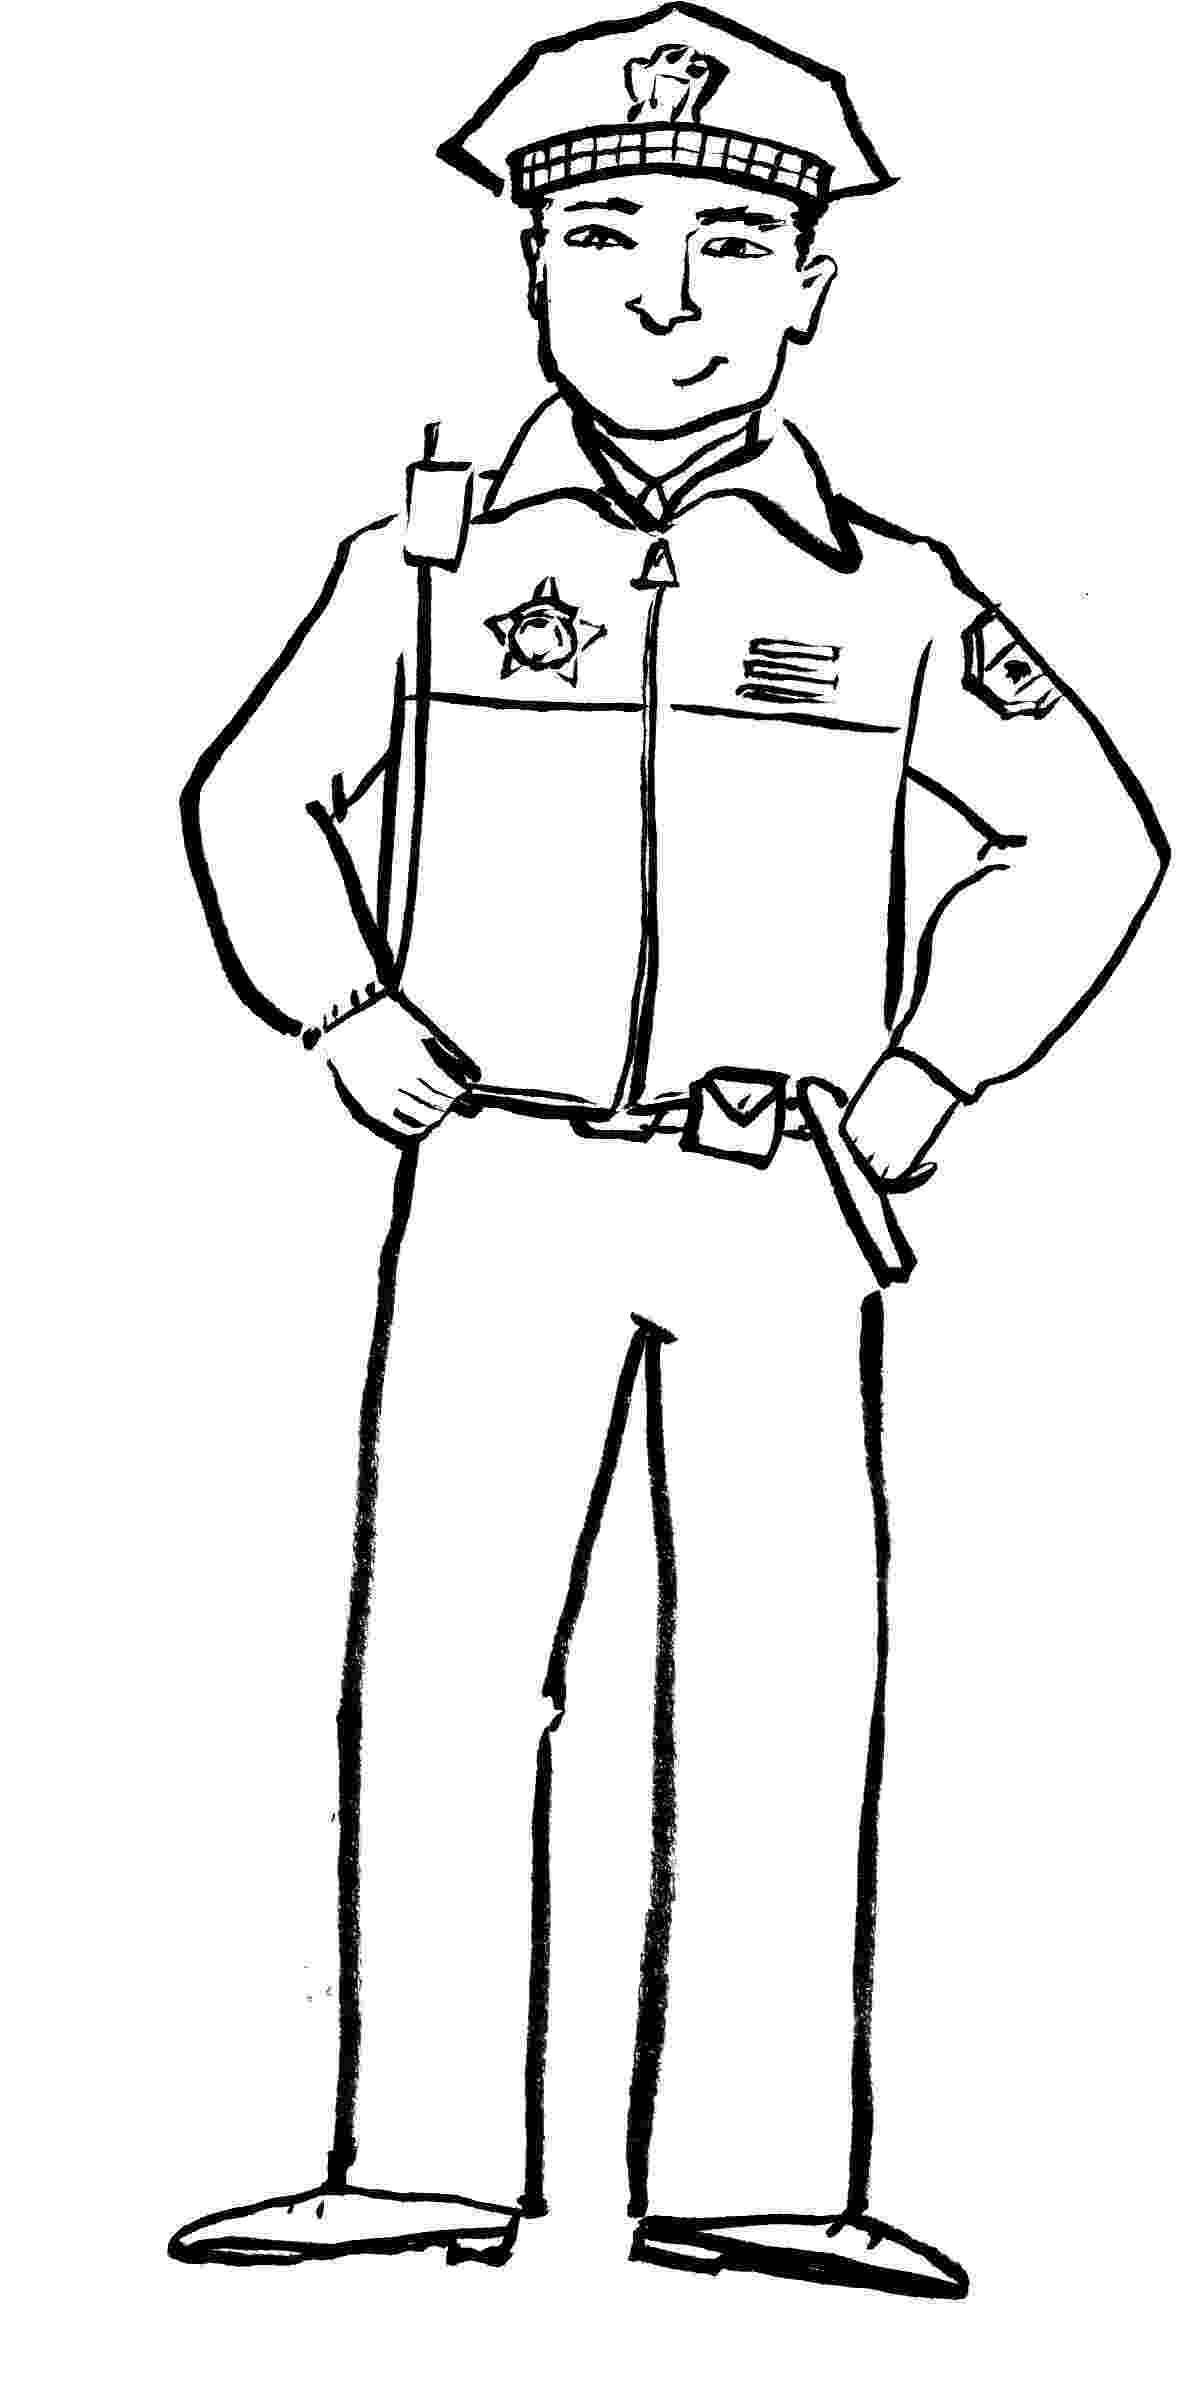 police pictures to color police officer coloring page free printable coloring pages color pictures police to